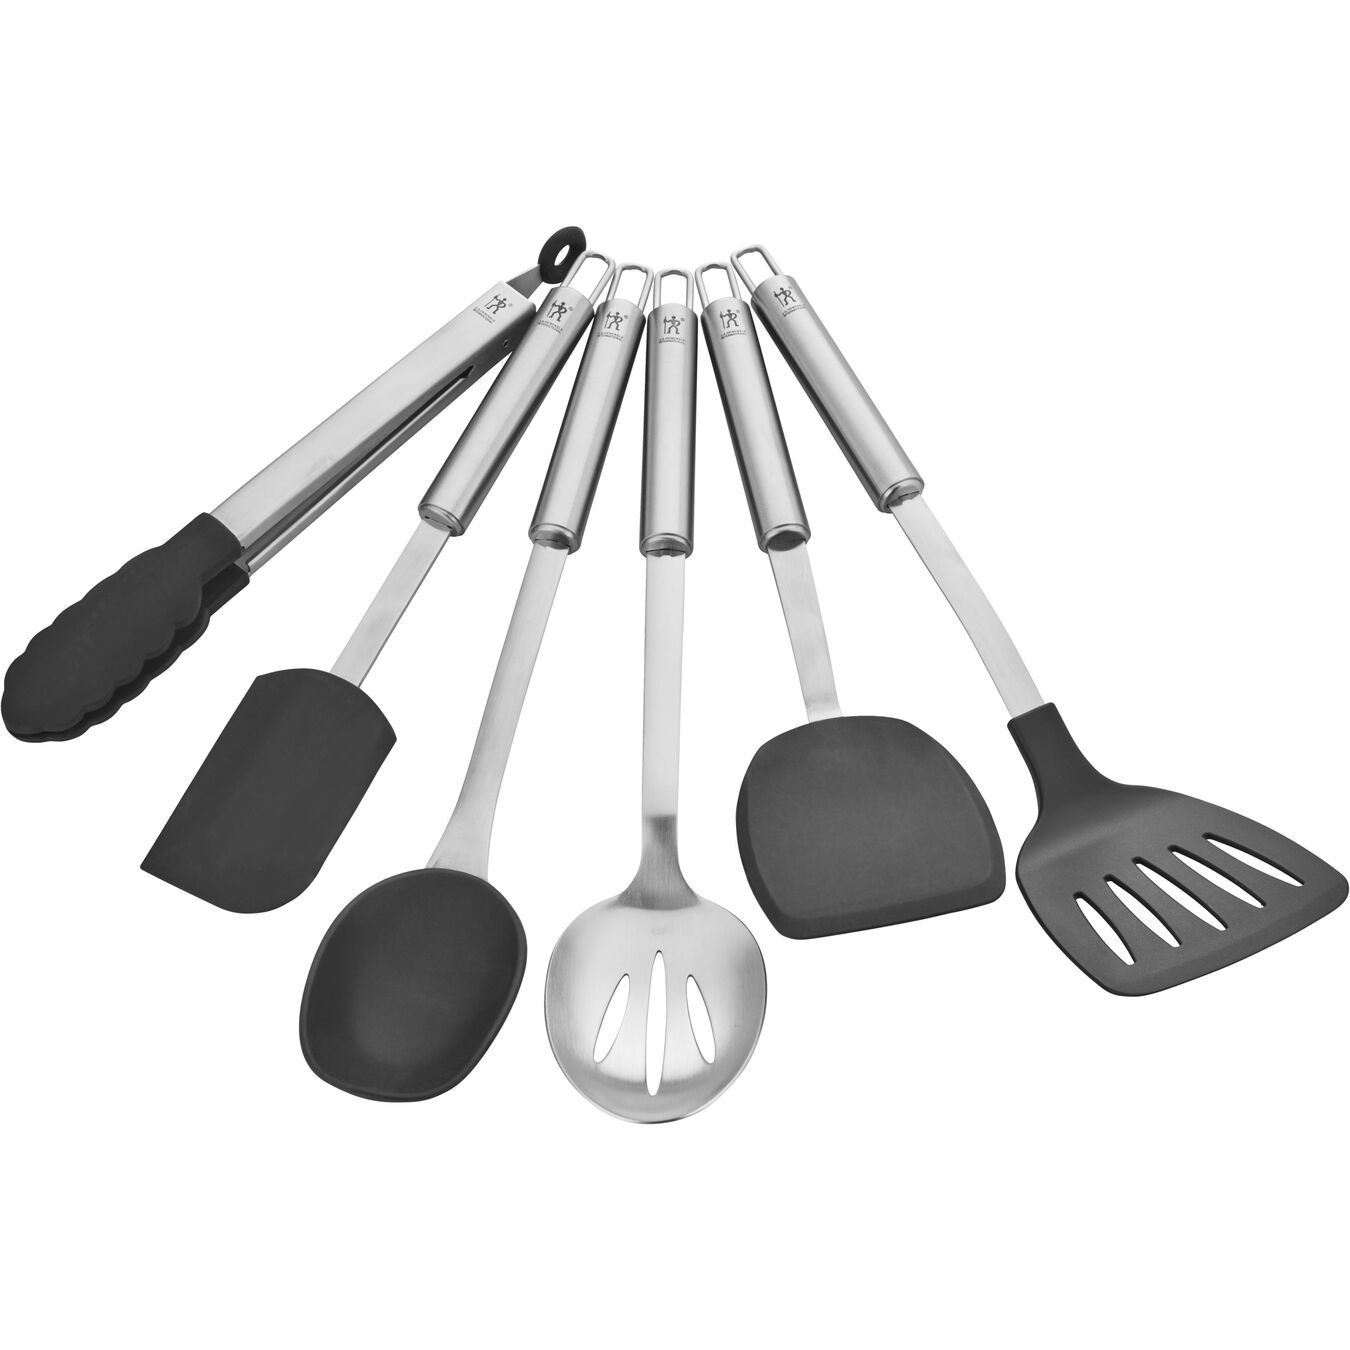 6-pc Kitchen gadgets sets, 18/10 Stainless Steel ,,large 3